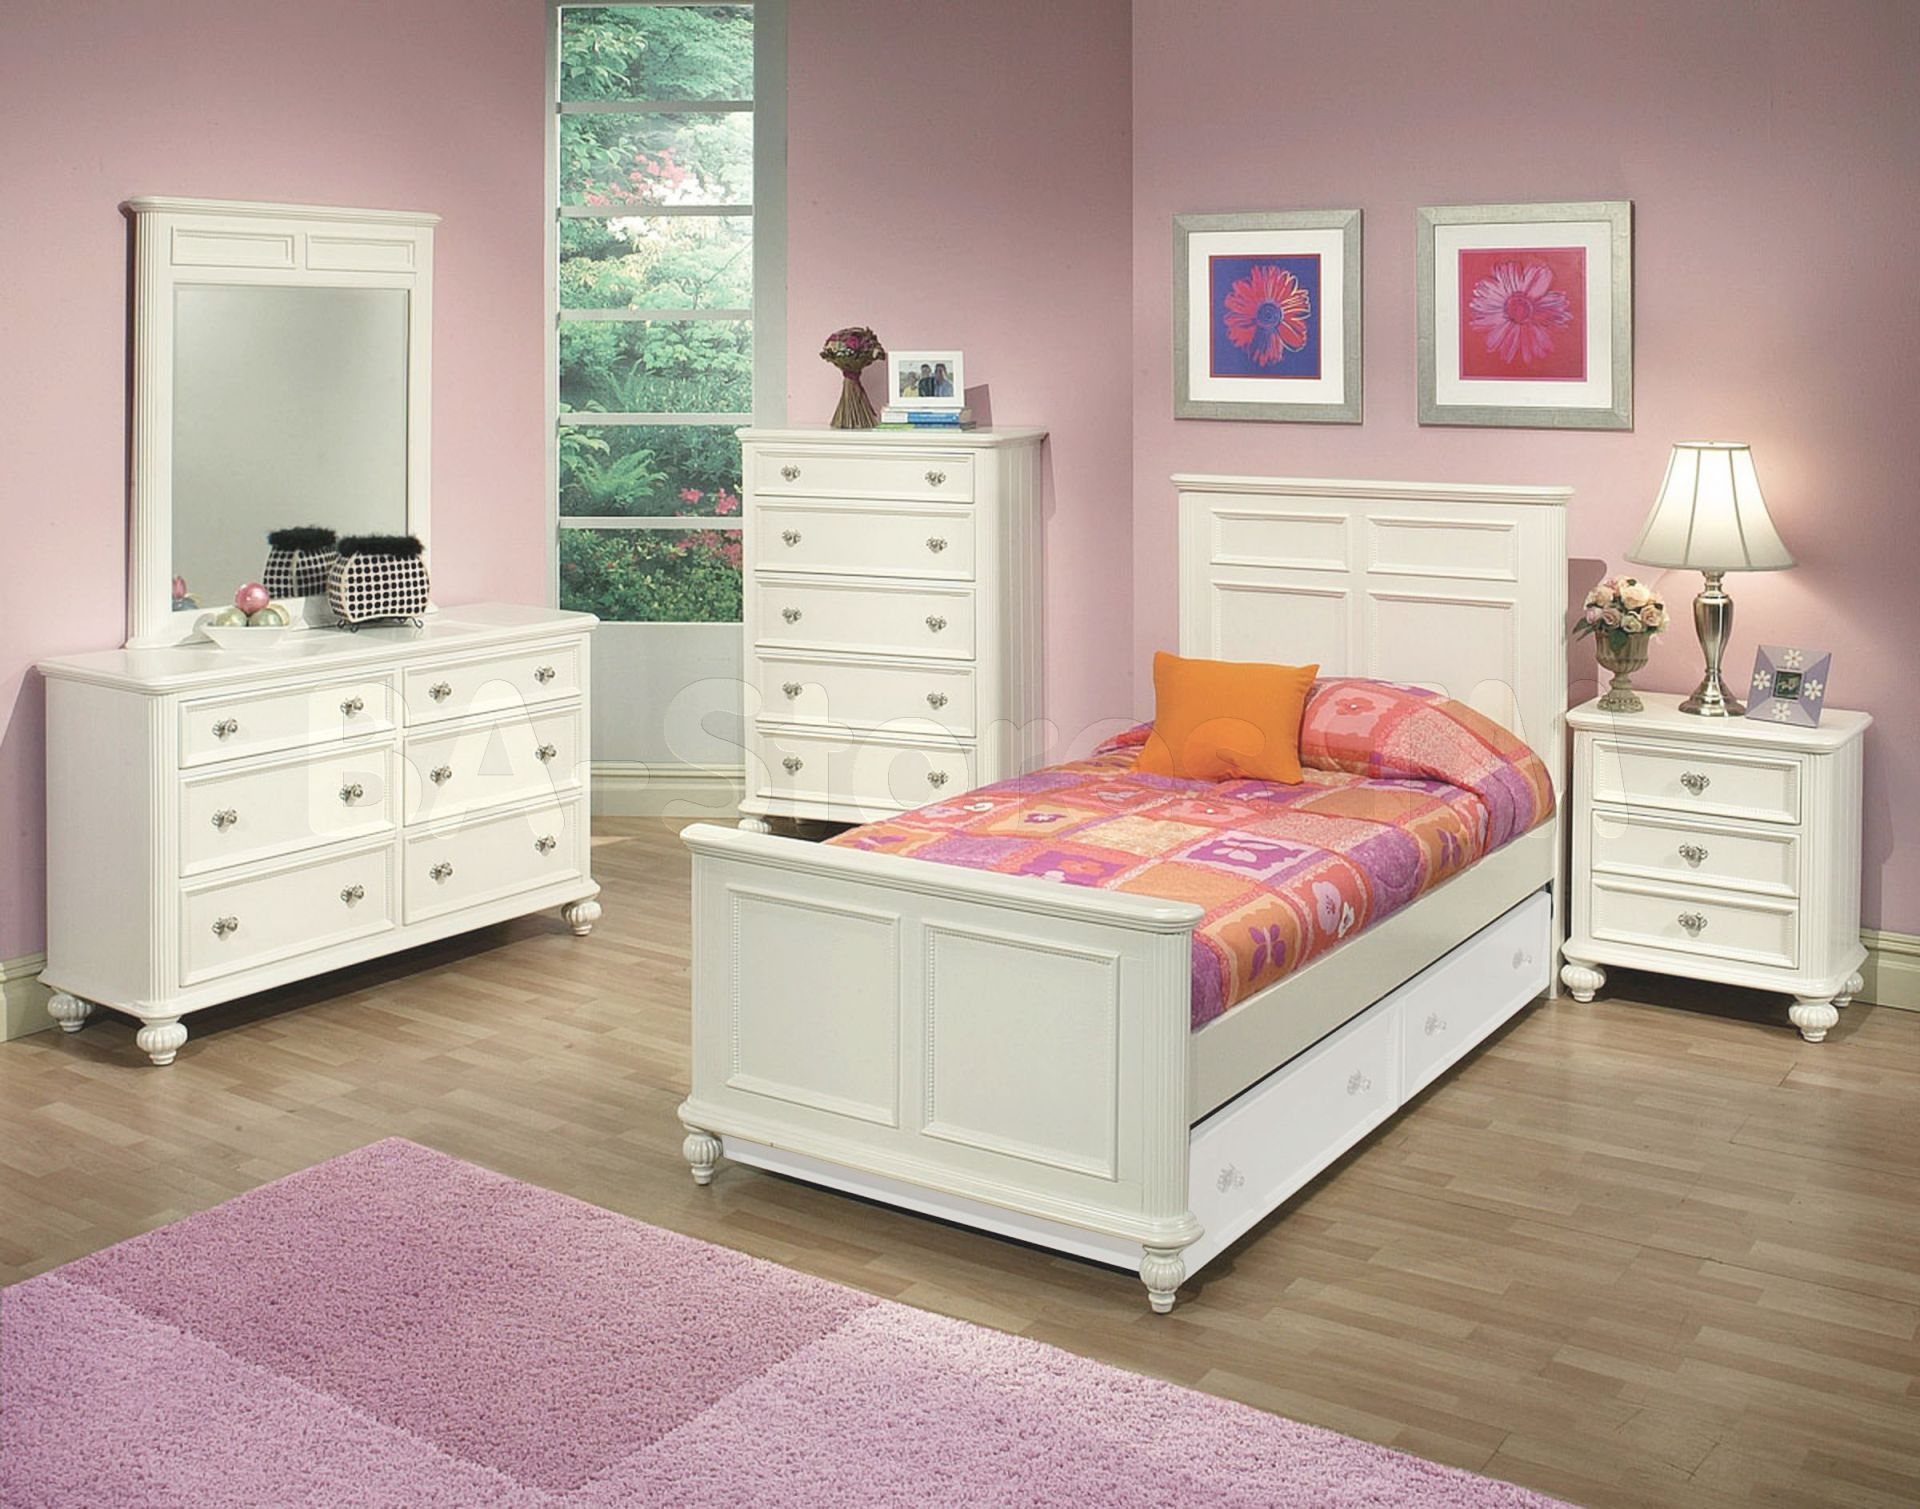 unique white bedroom furniture sets awesome decors Cheap Childrens Bedroom Furniture Sets id=48572